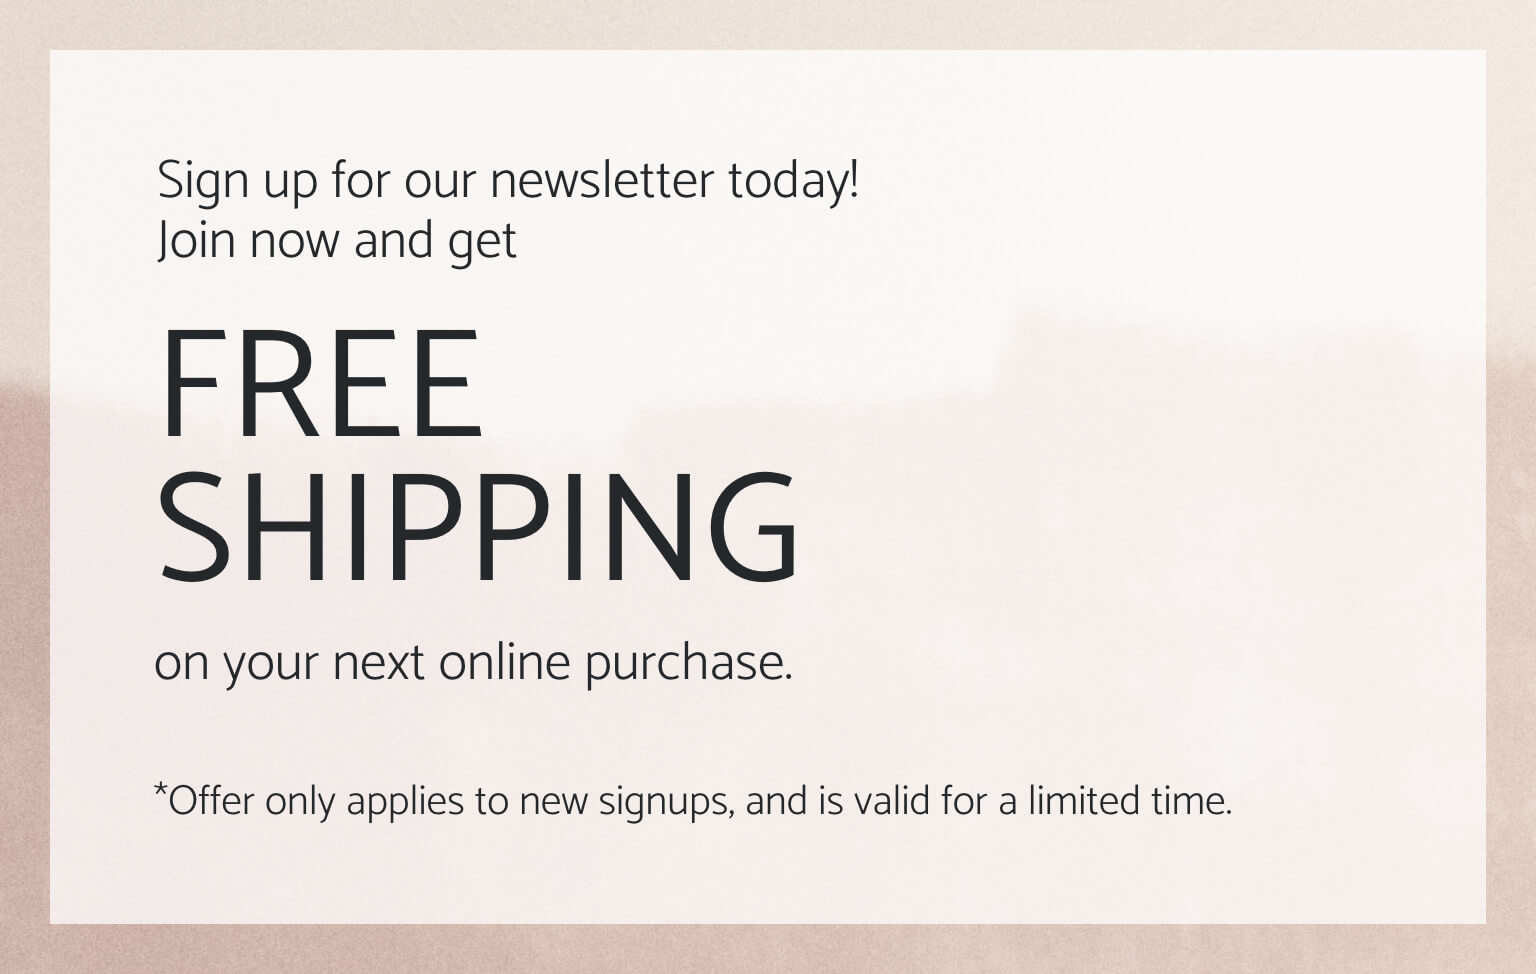 Join now and get free shipping on your next online purchase.